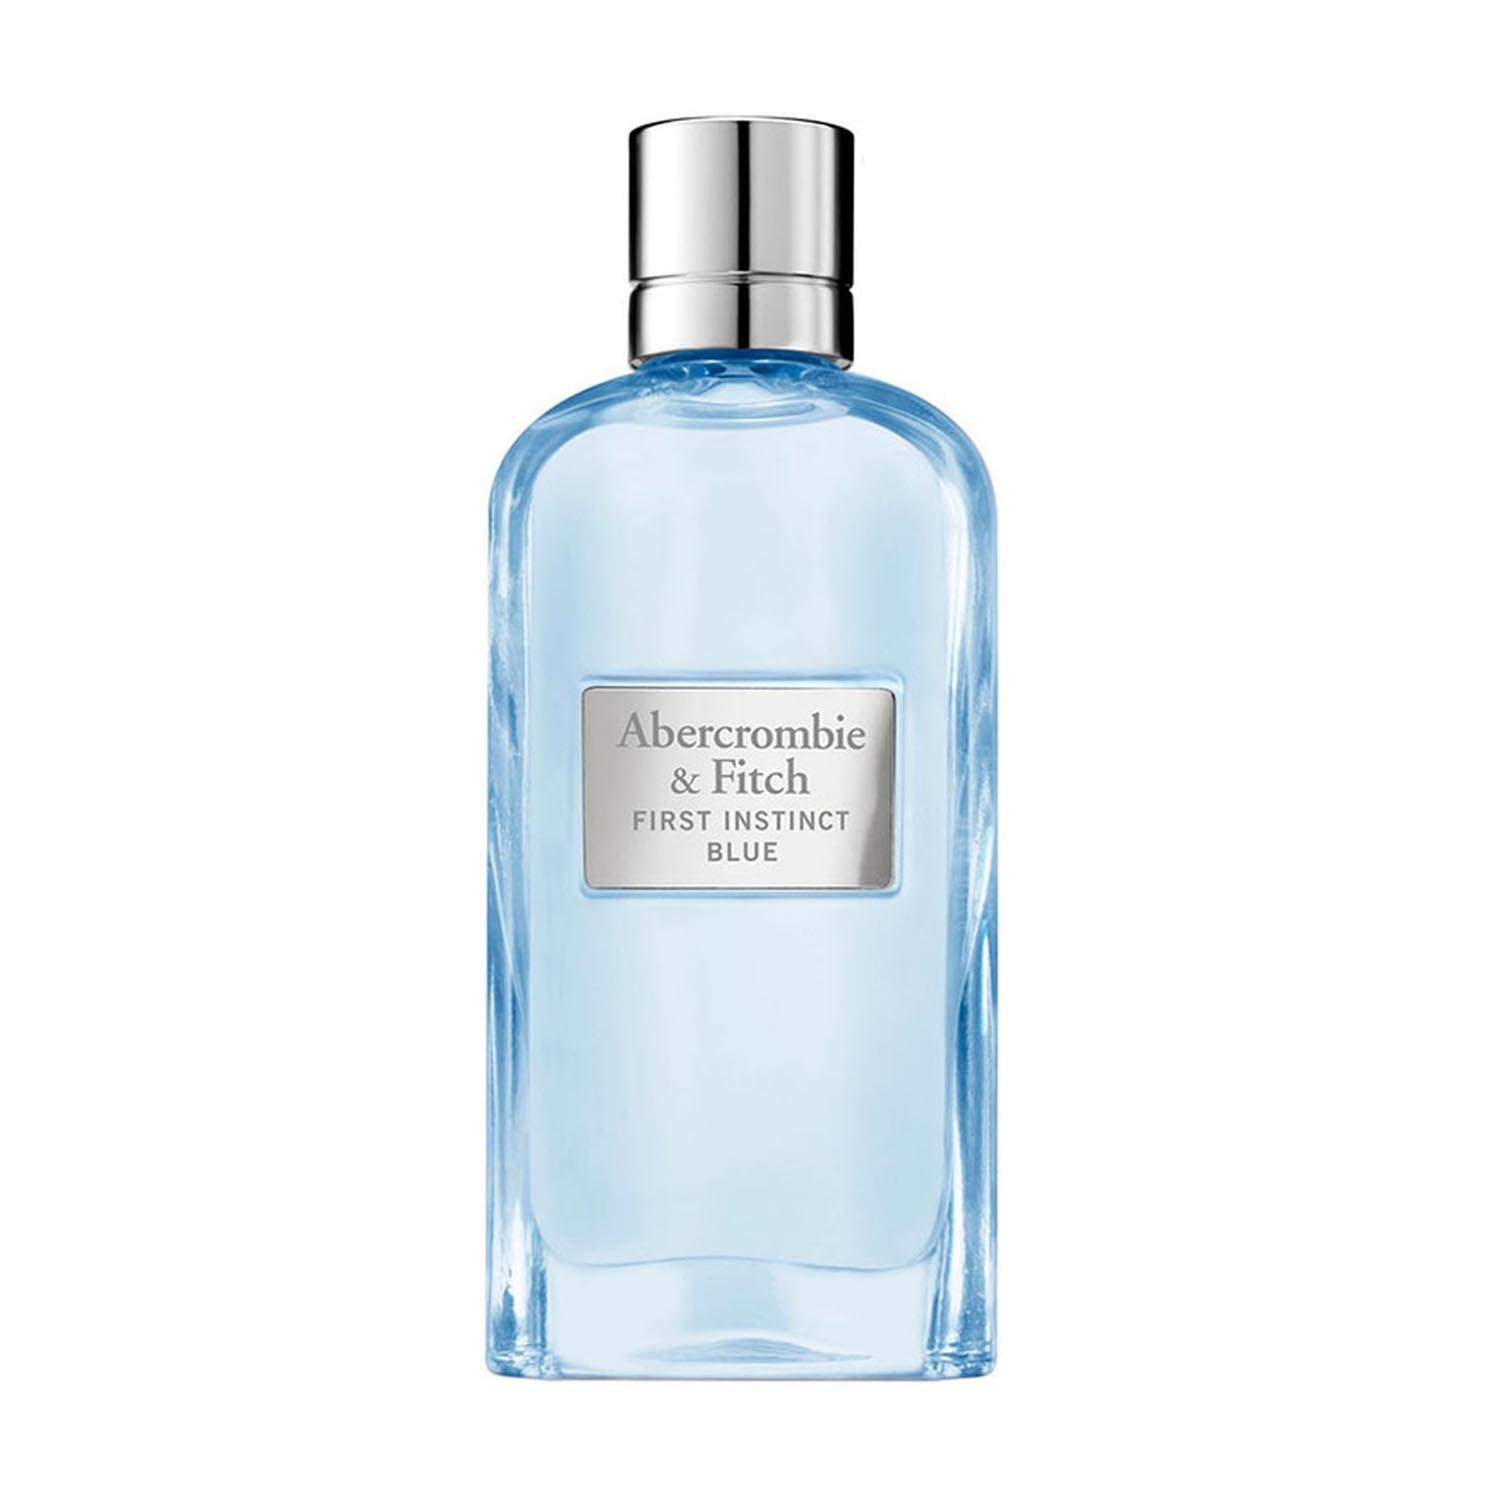 Abercrombie fitch first instinct blue eau de parfum 100ml vaporizador